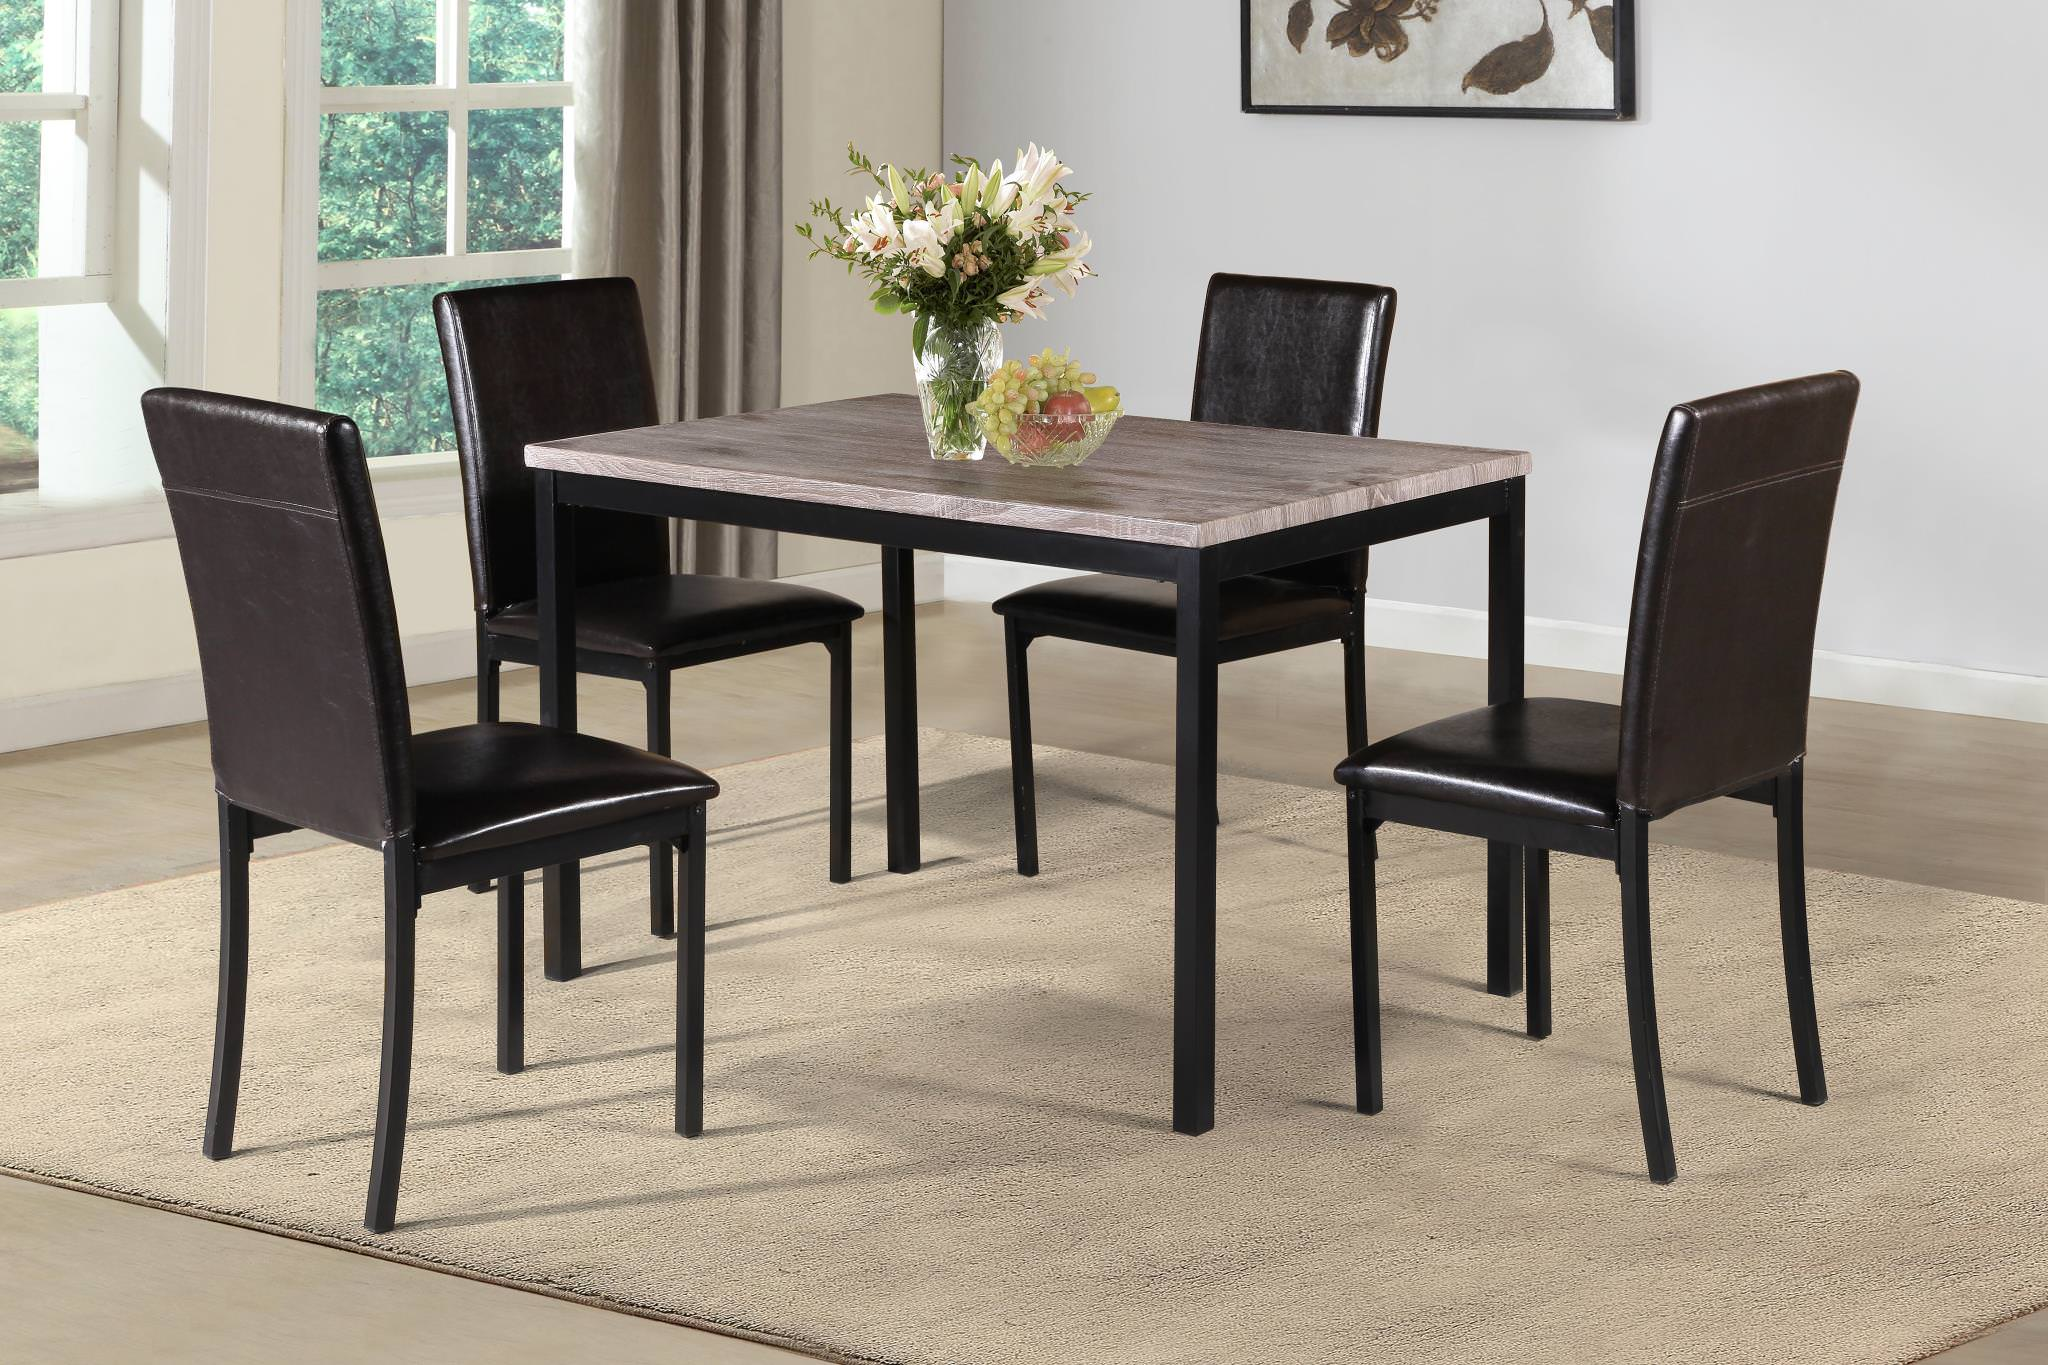 U0026nbsp;Home Source Melissa 5 Piece Counter Height Dining Set, Light Wood  Grain Table